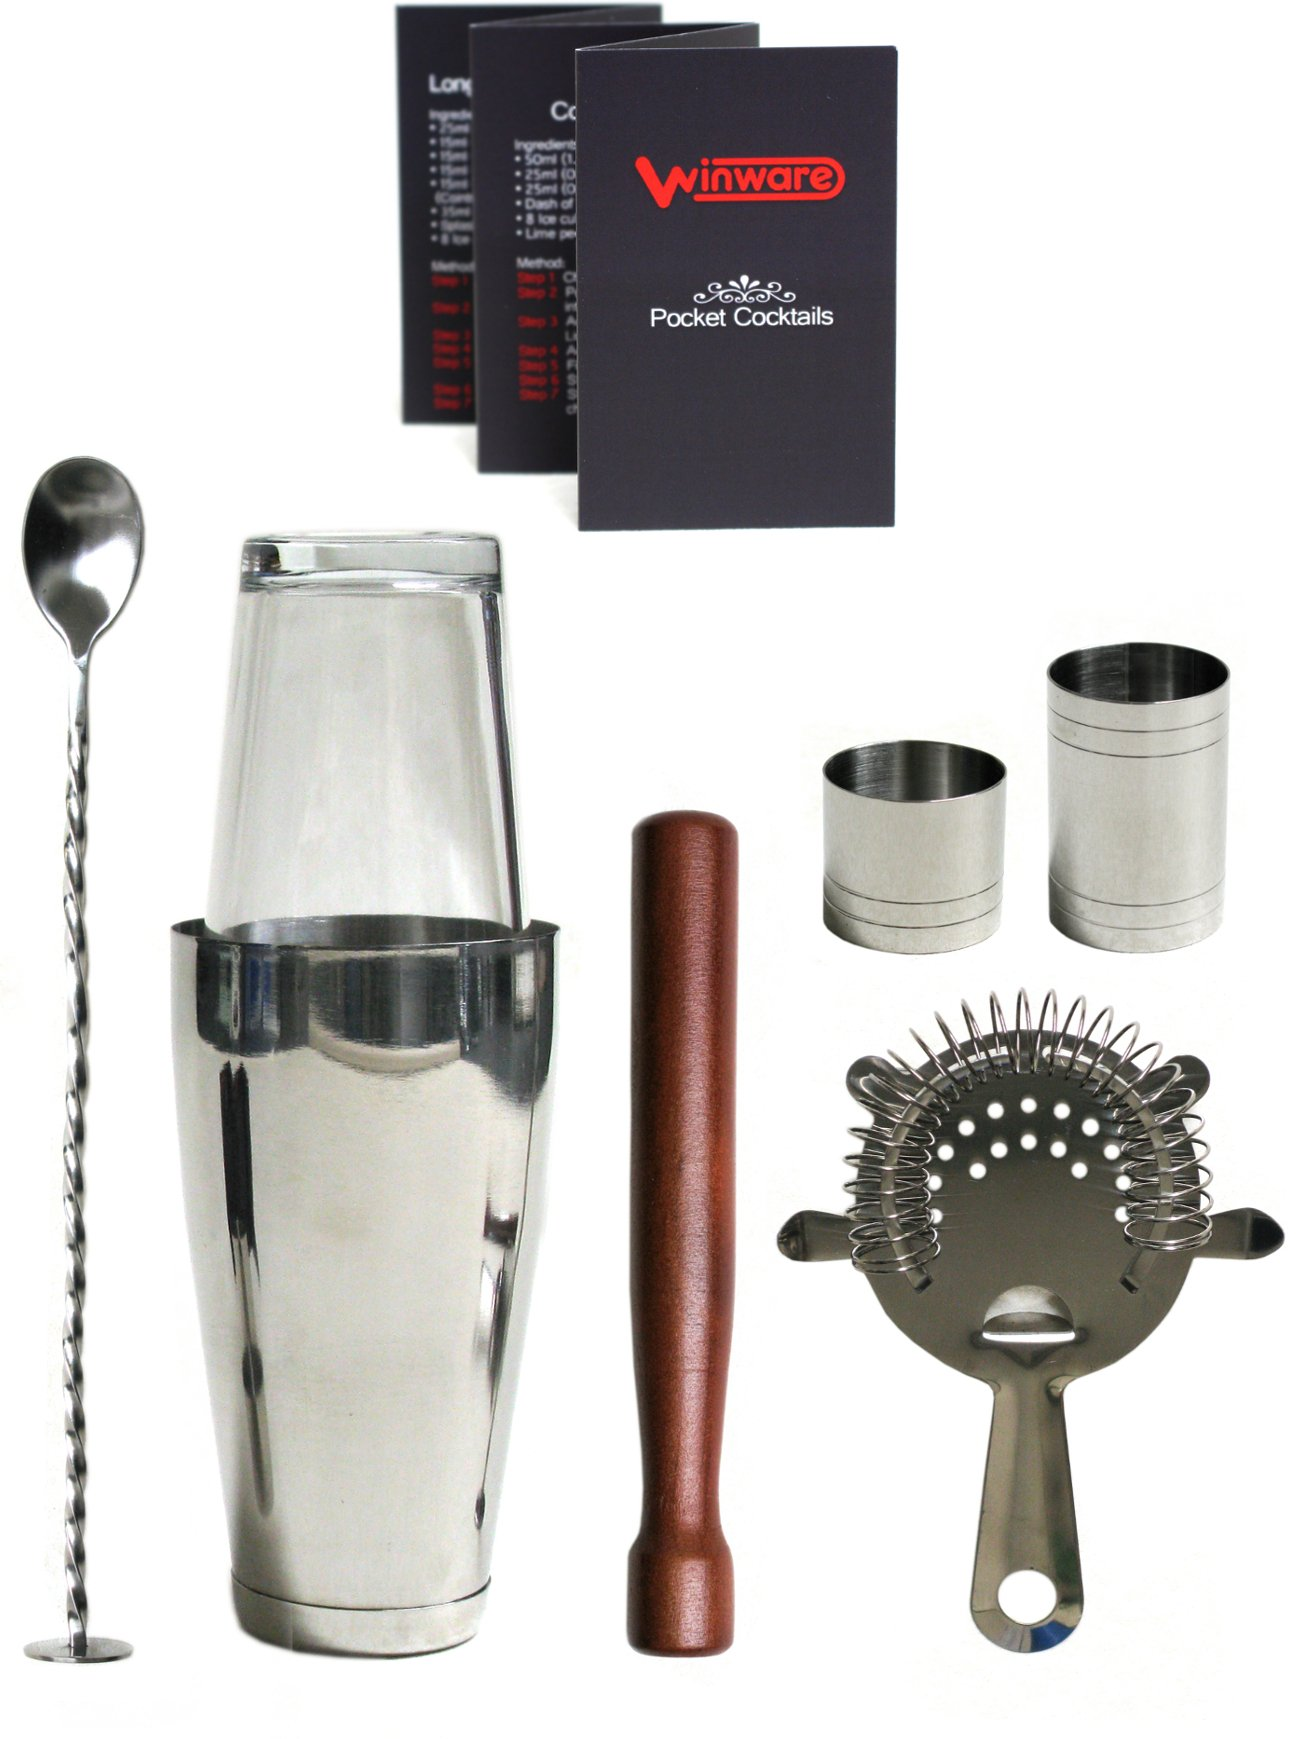 Winware Boston Cocktail Shaker Gift Set and Pocket Cocktail Guide with Winware Gift Box (6 Items)